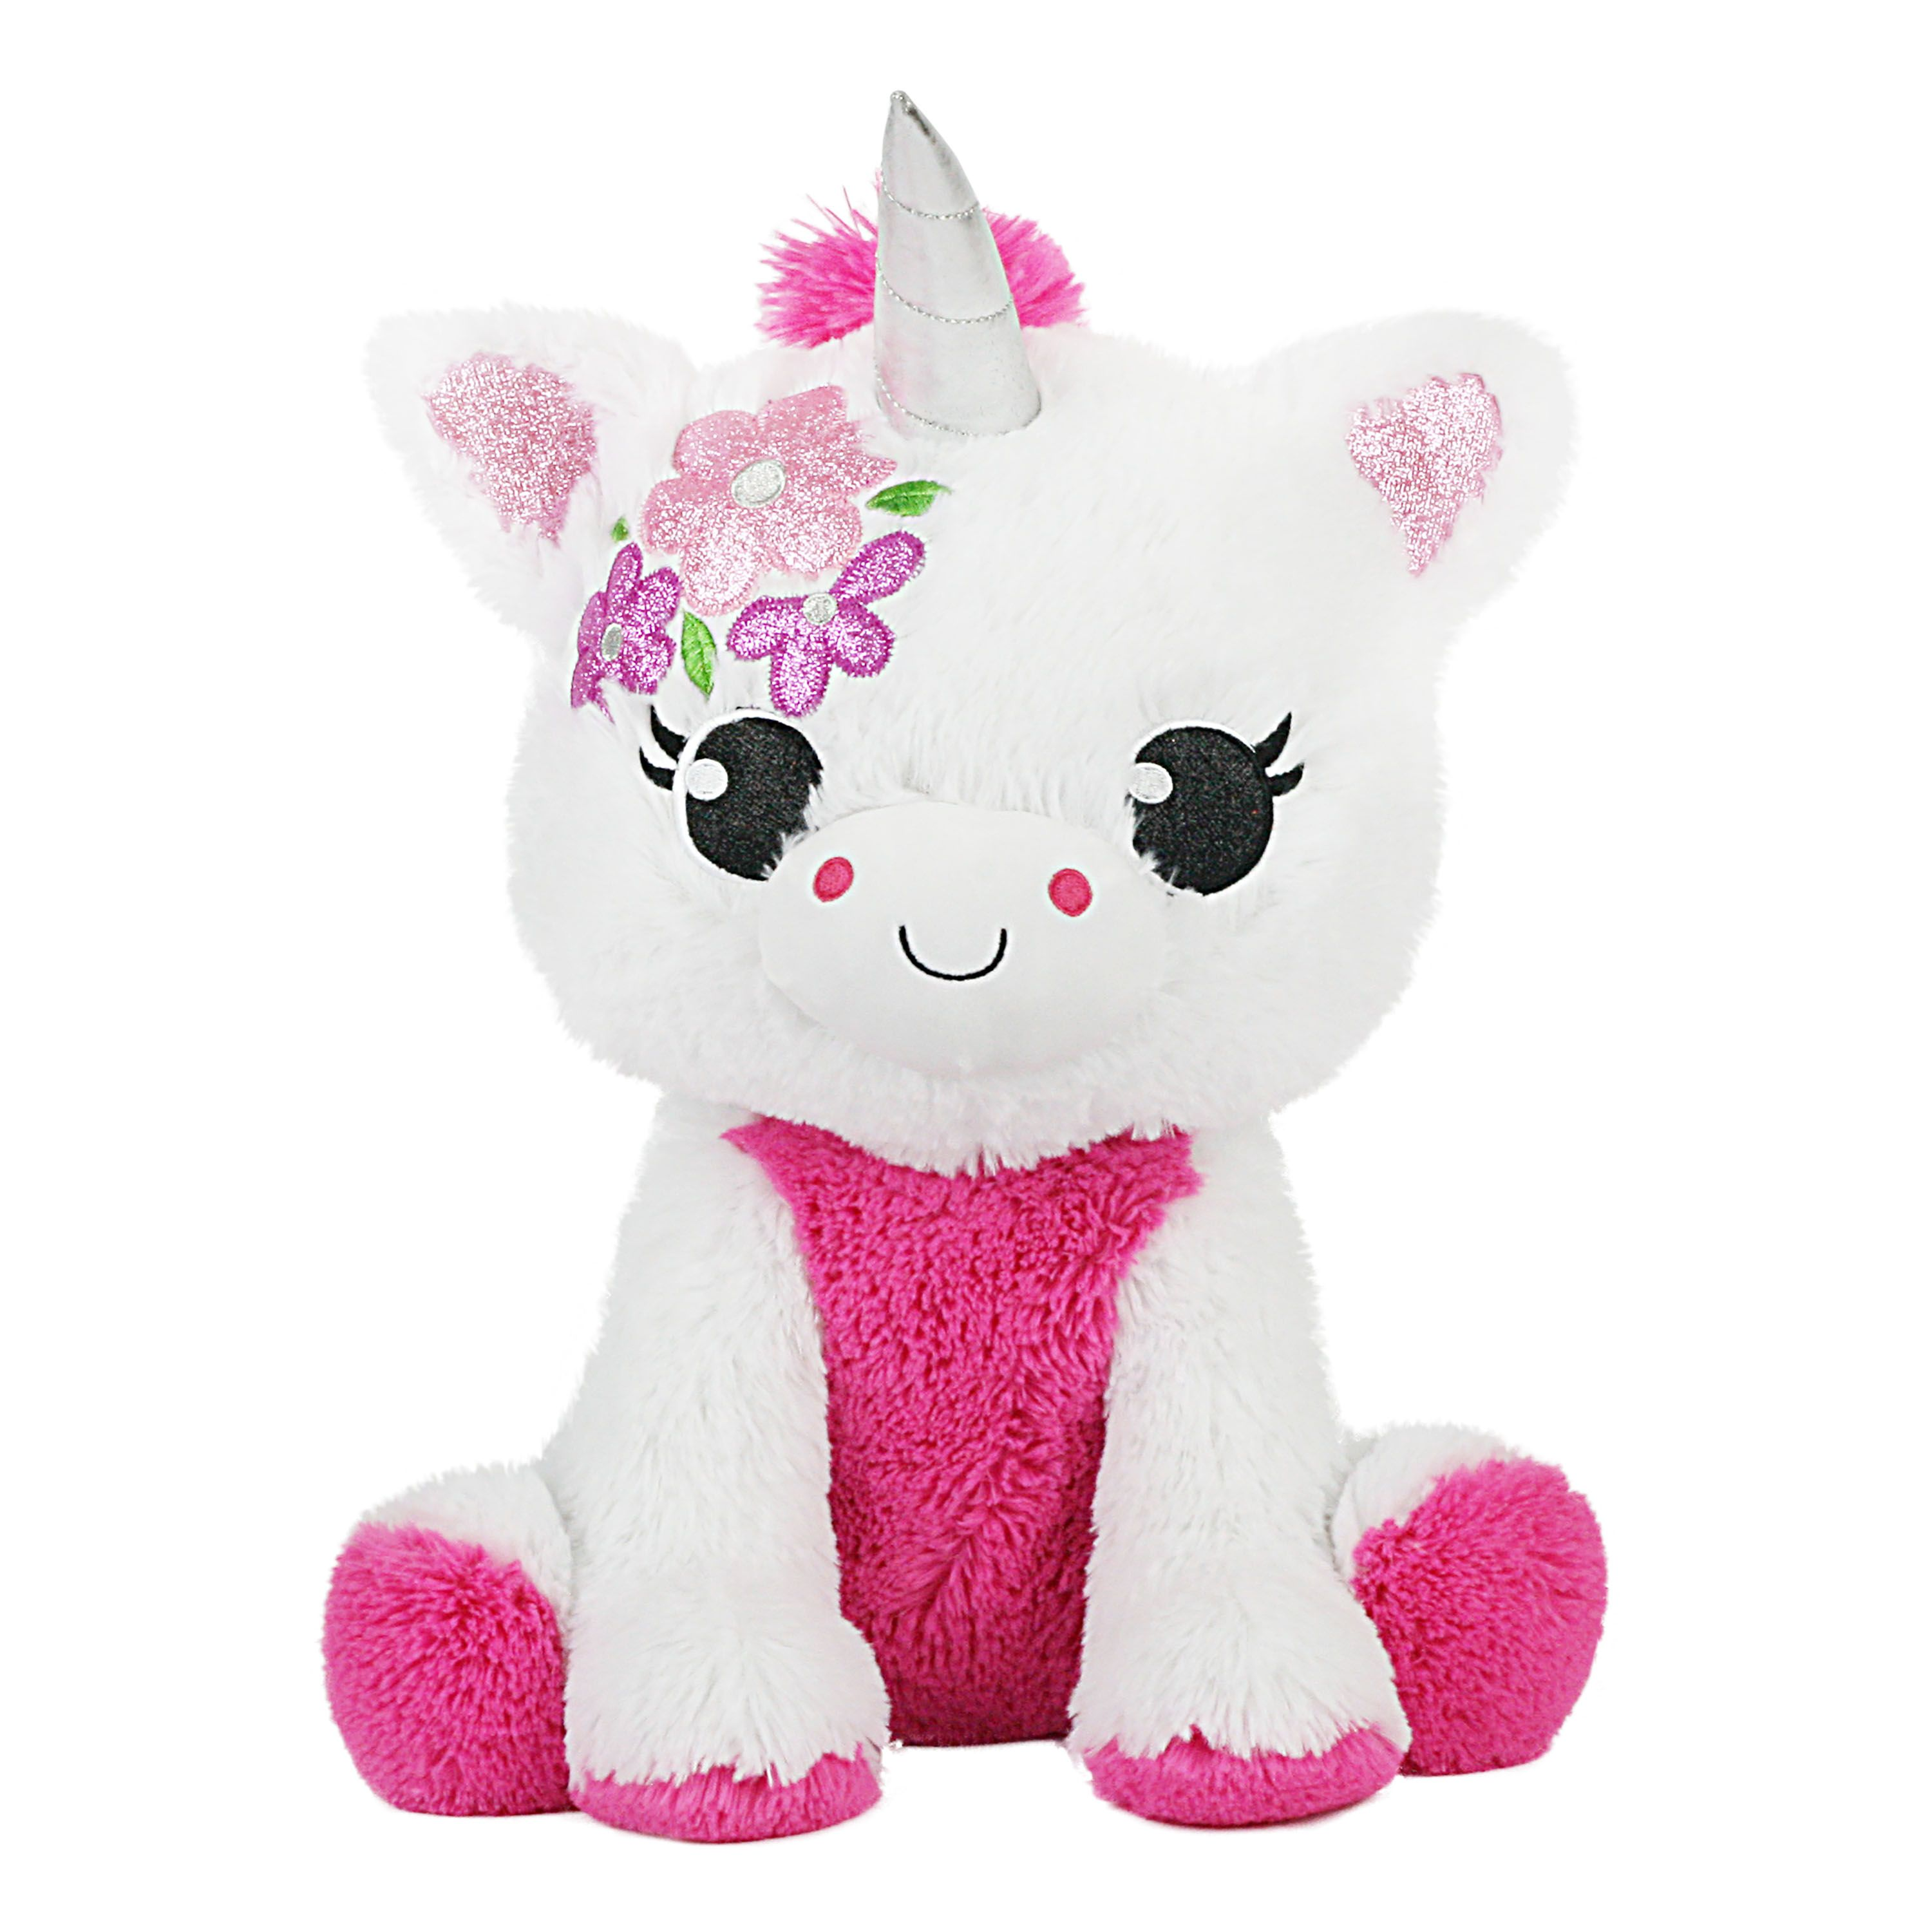 Holiday Time Holiday Time Christmas Plush ToyUnicorn